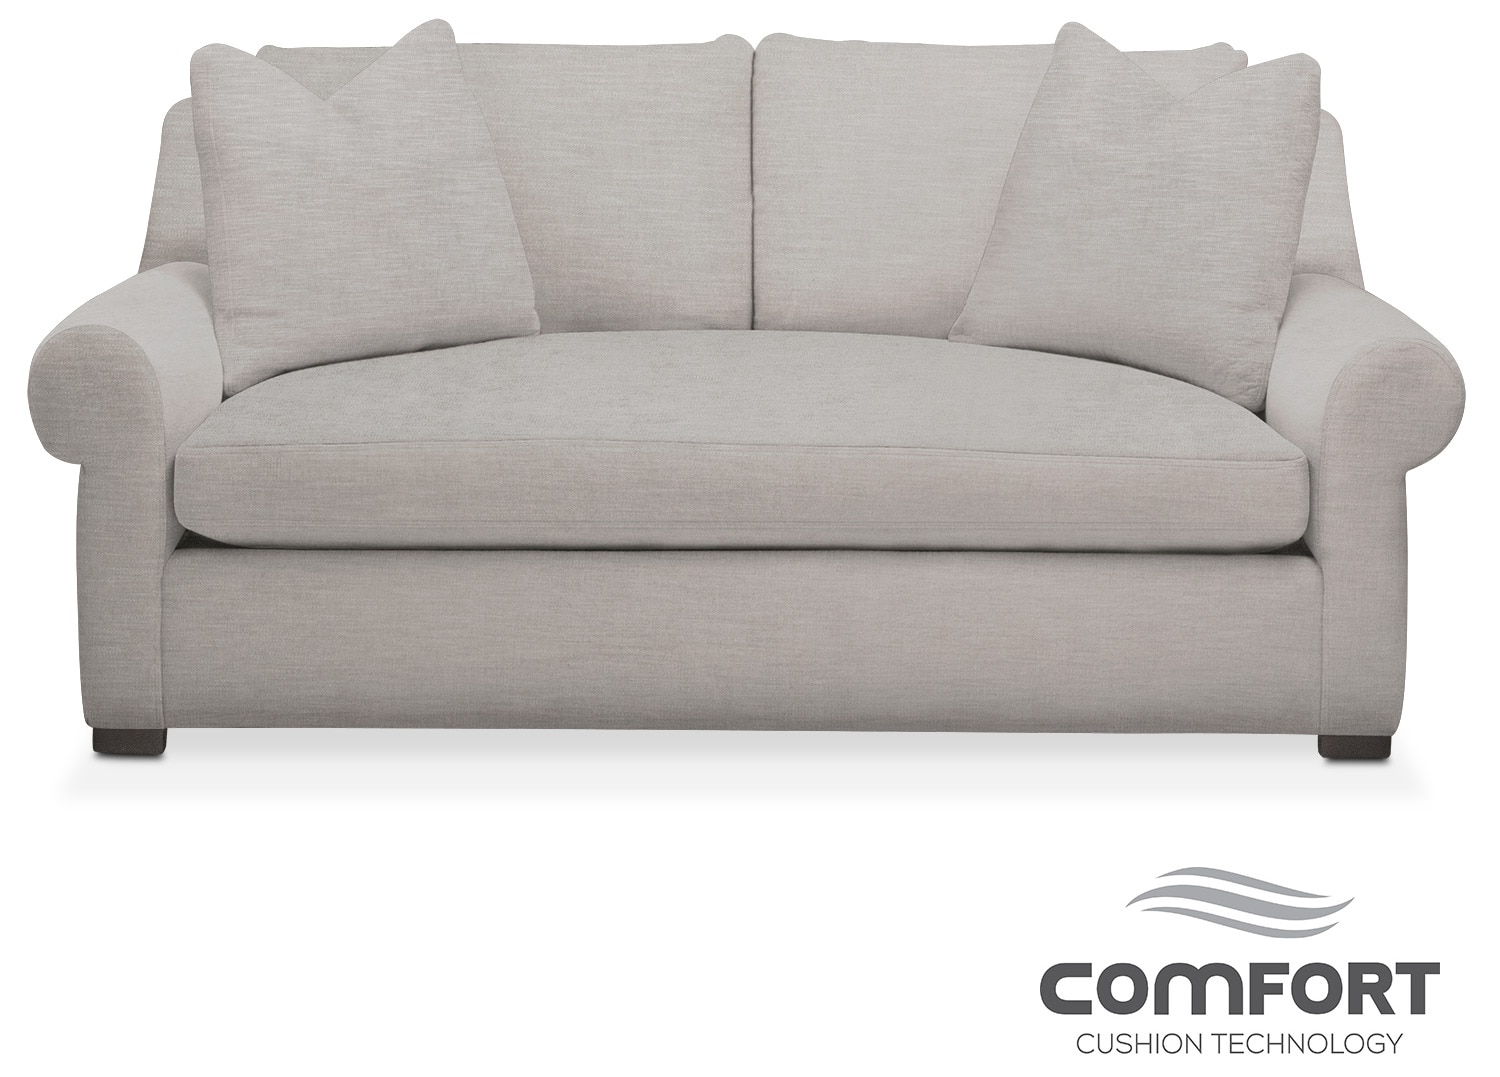 Living Room Furniture - Asher Comfort Apartment Sofa - Dudley Gray